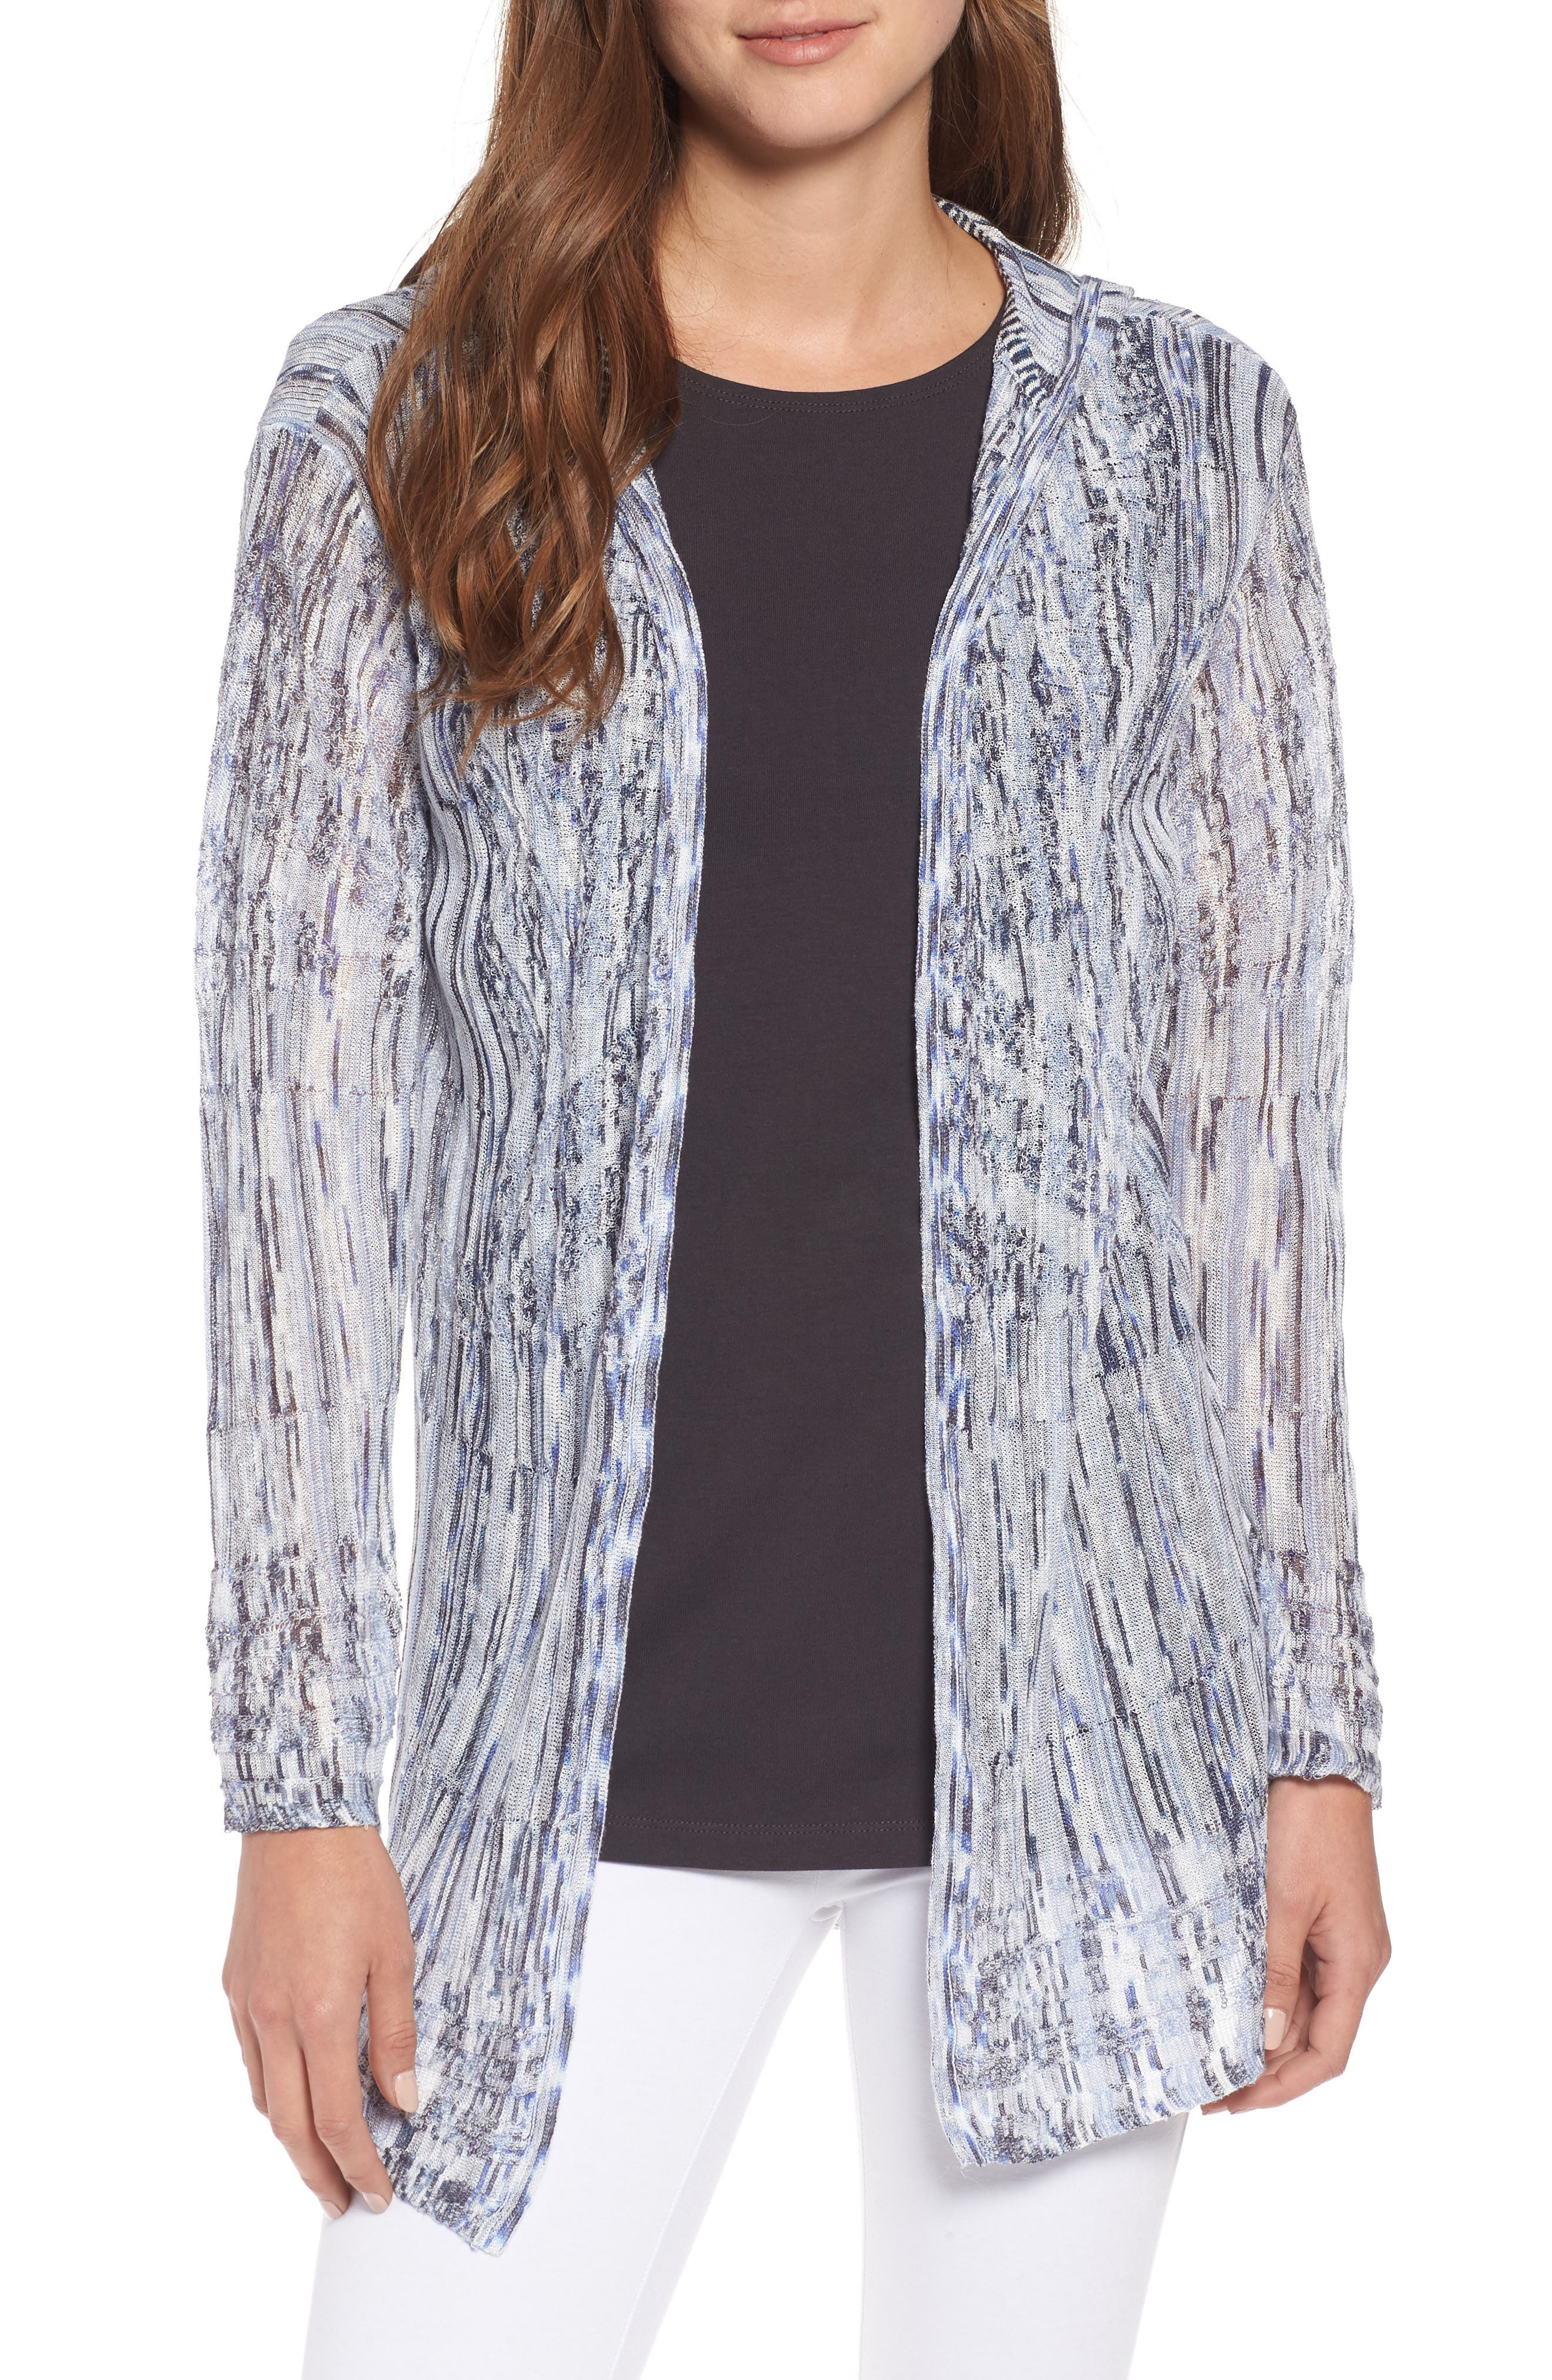 New Frontier Hooded Cardigan,                         Main,                         color, 490